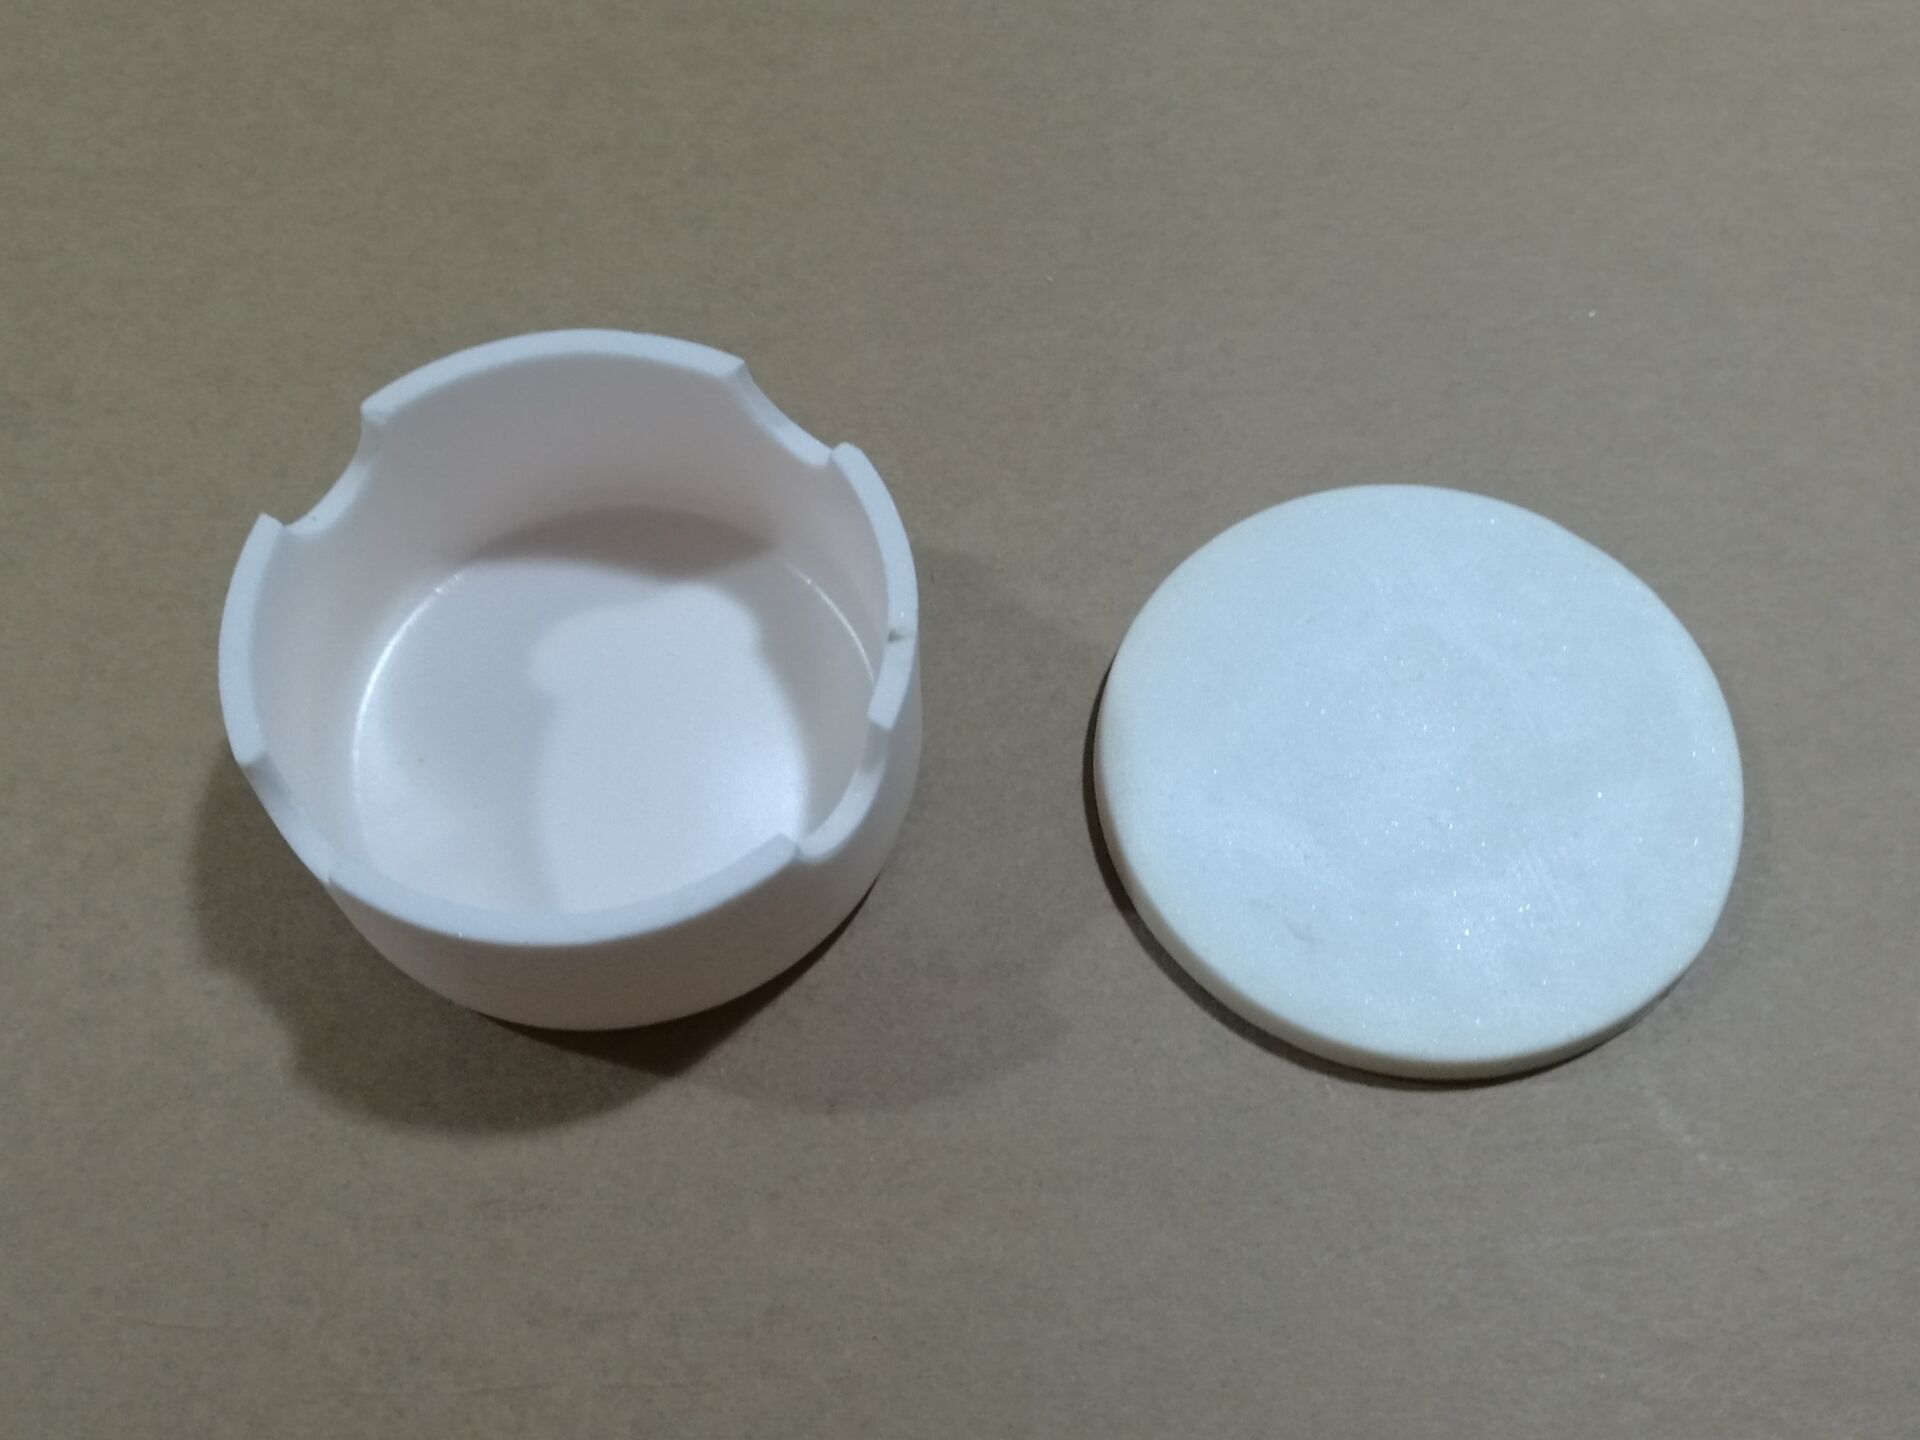 Sinter Bowl,75mm x35mm,With Lid,Grooved side